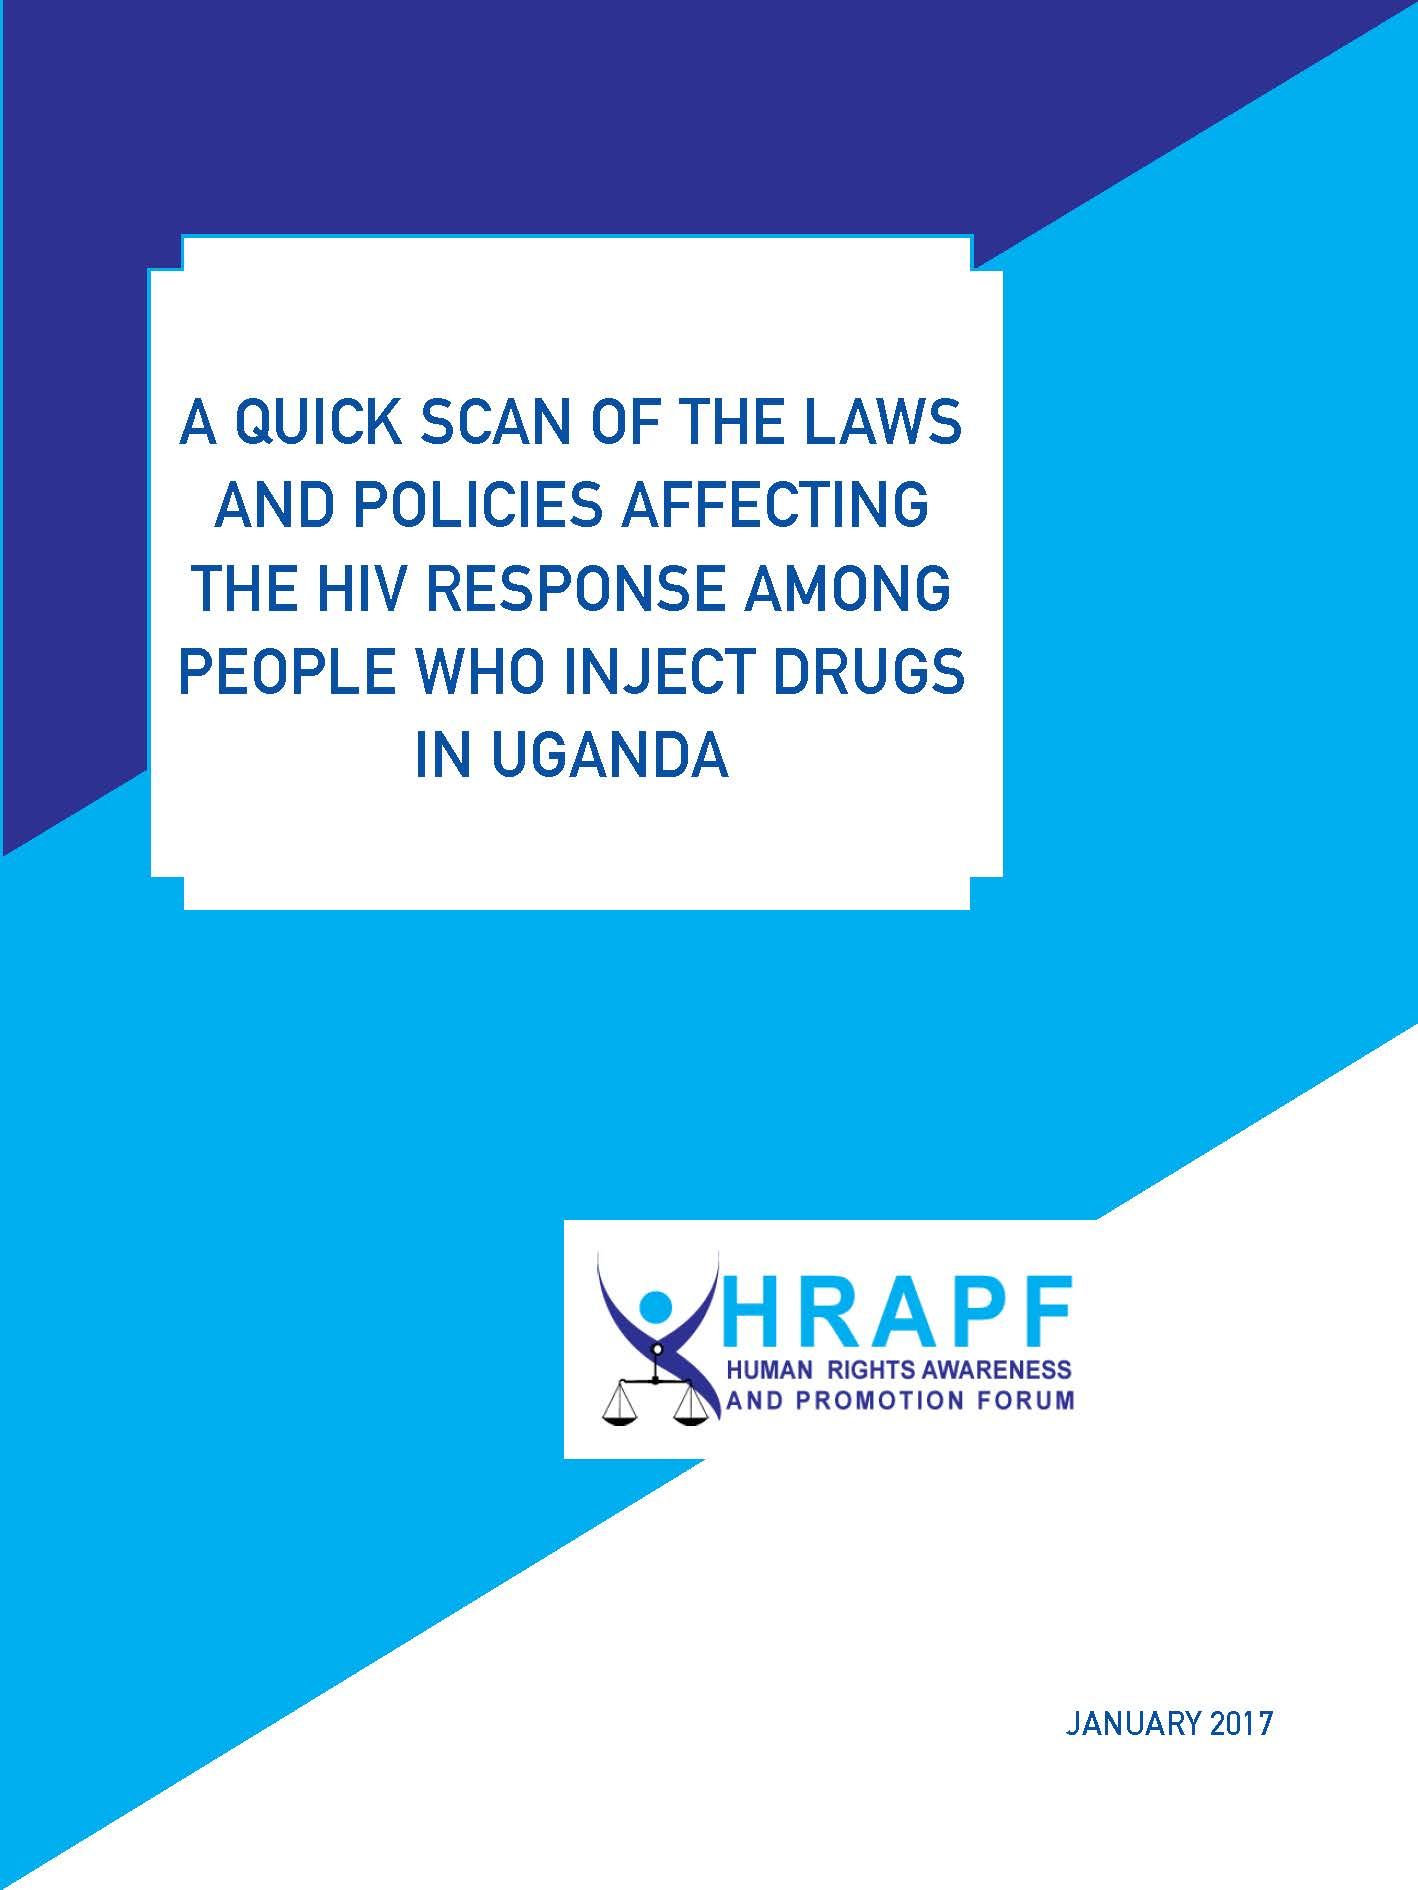 Quick scan on laws affecting People Who Inject Drugs